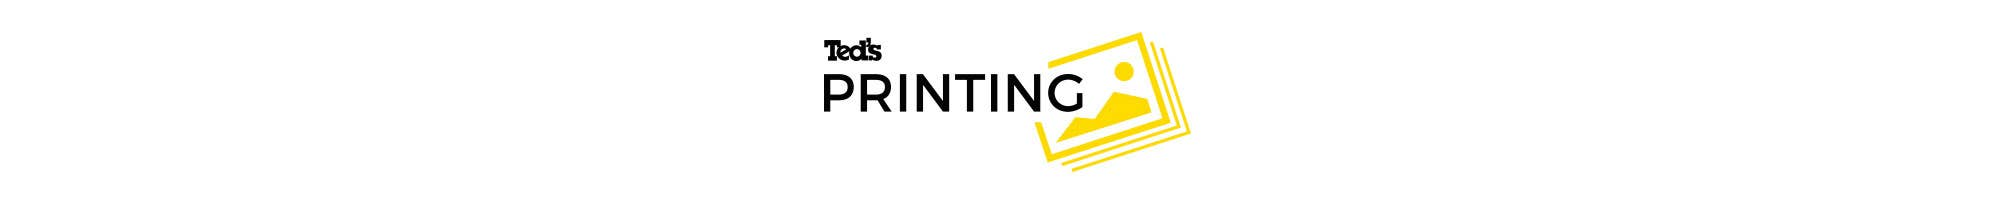 Ted's Printing Services